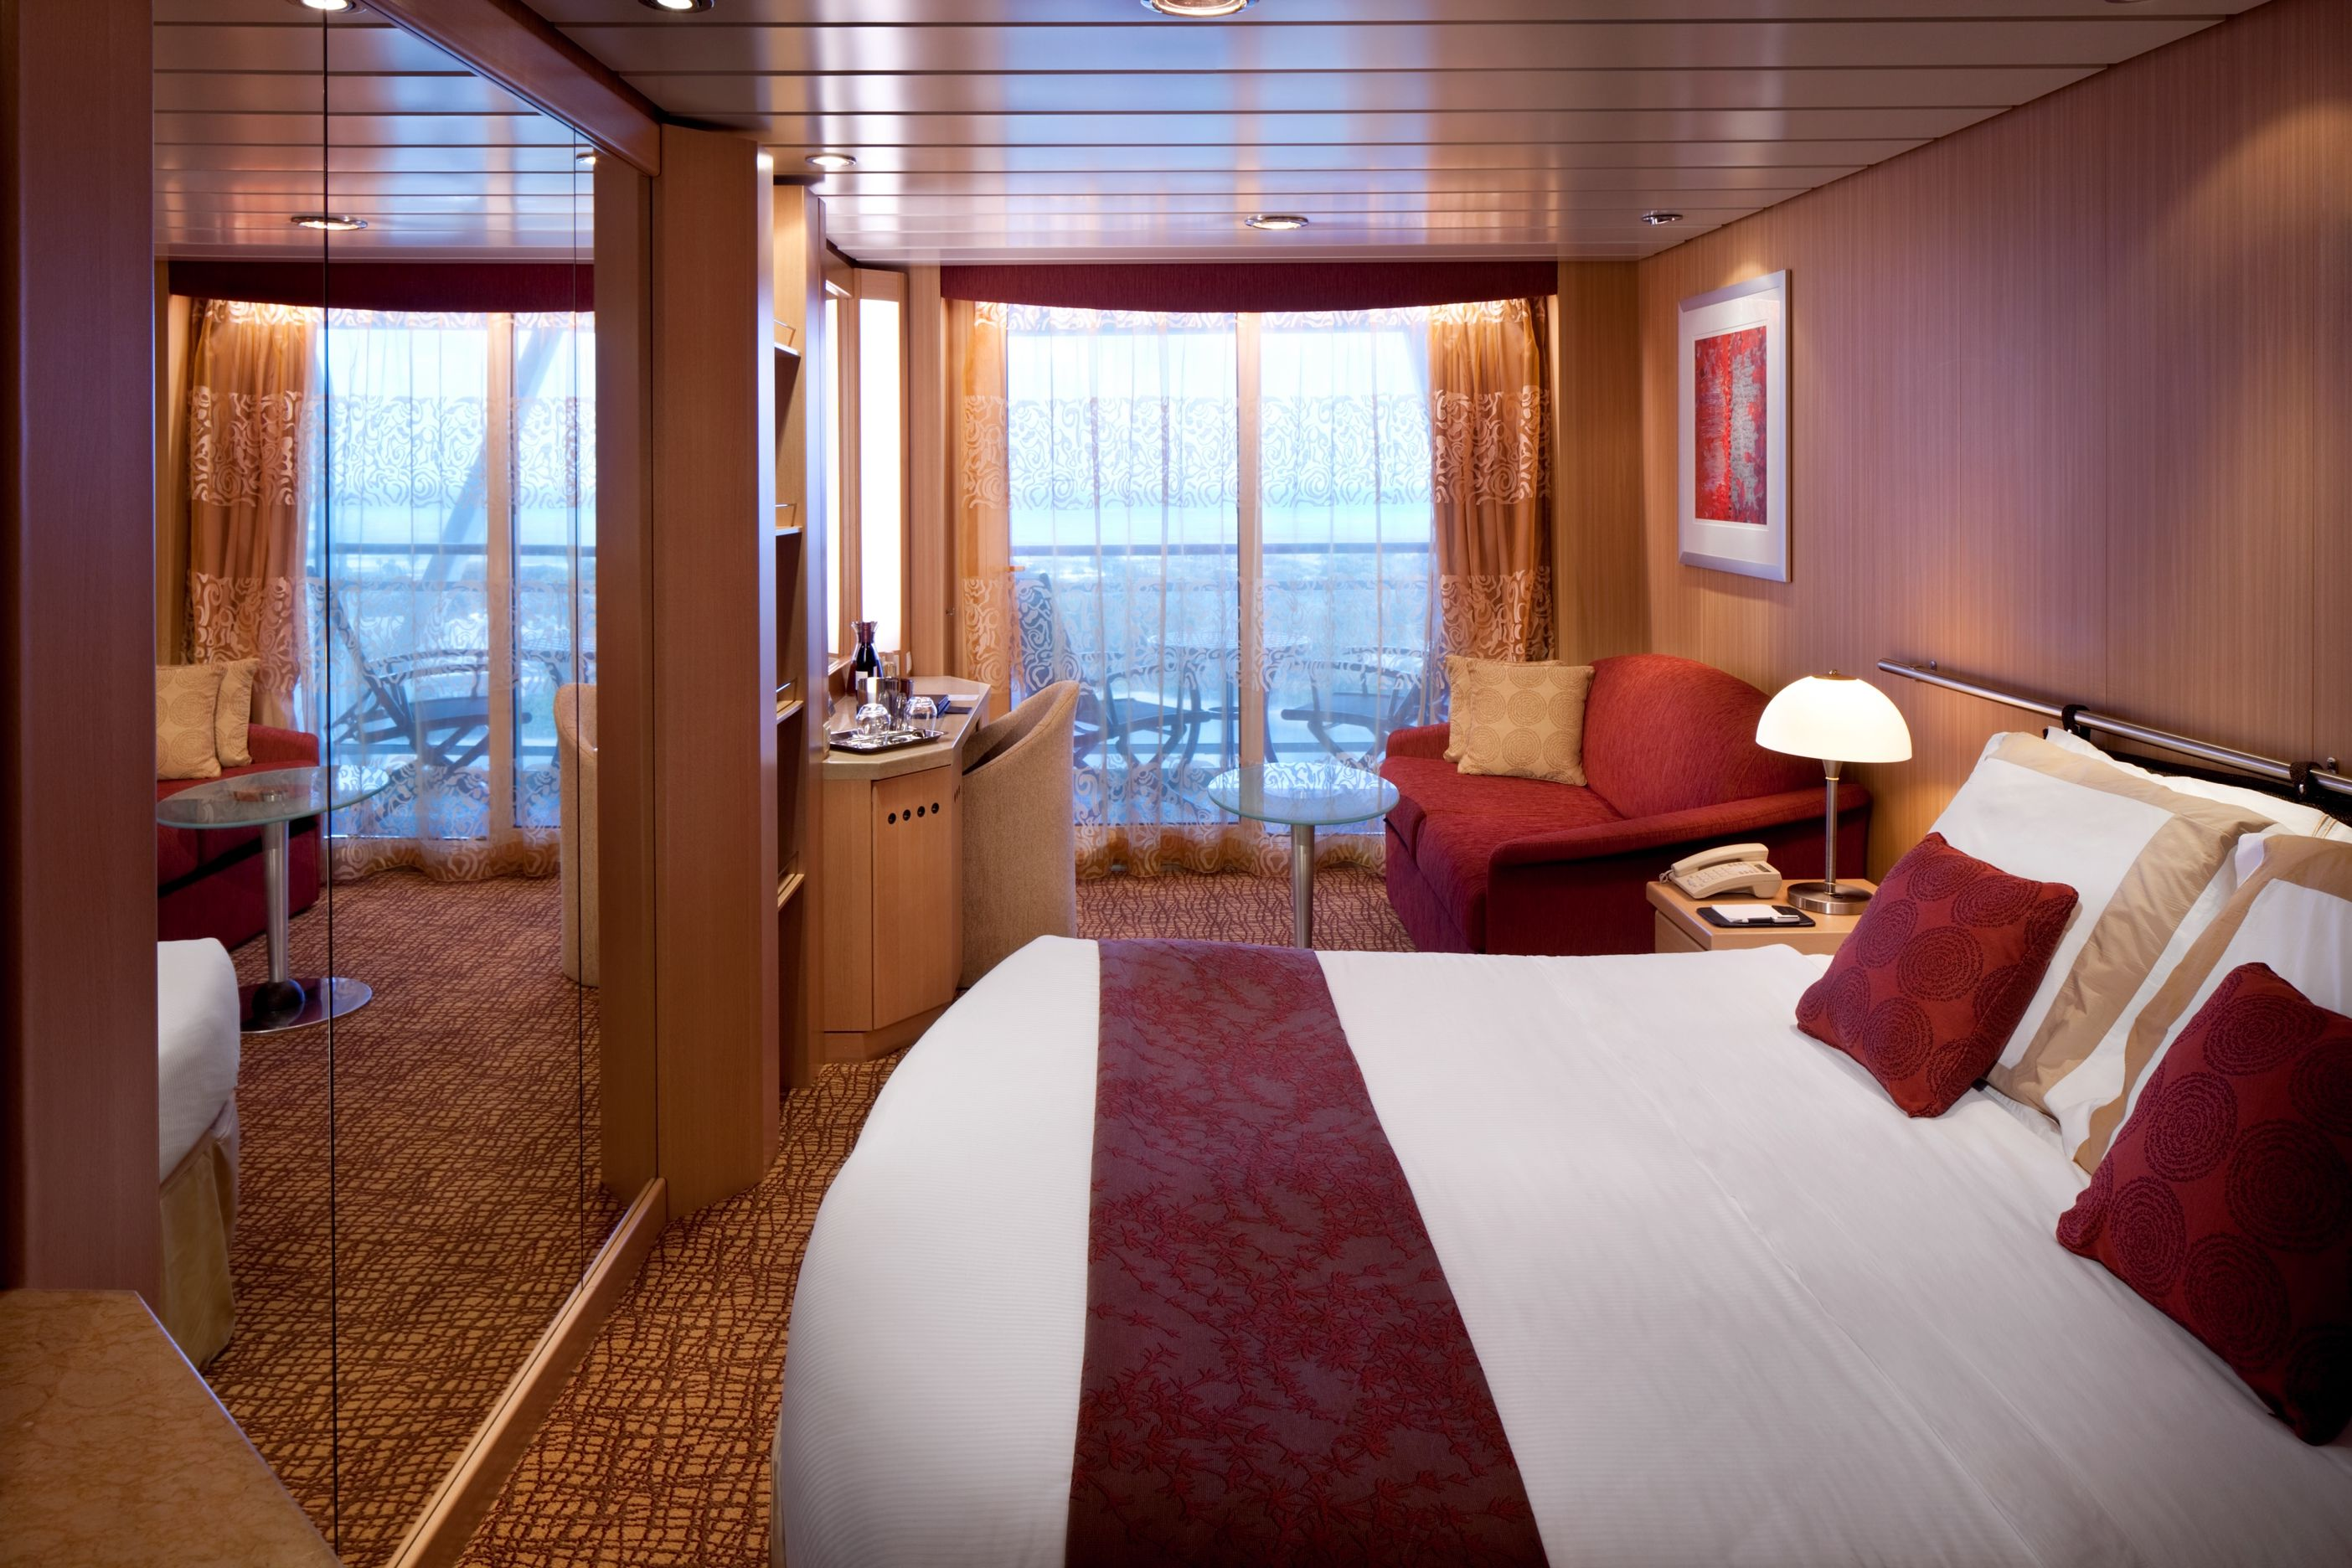 Equinox Relaxation Room for AQ Guests | Celebrity Cruises ...